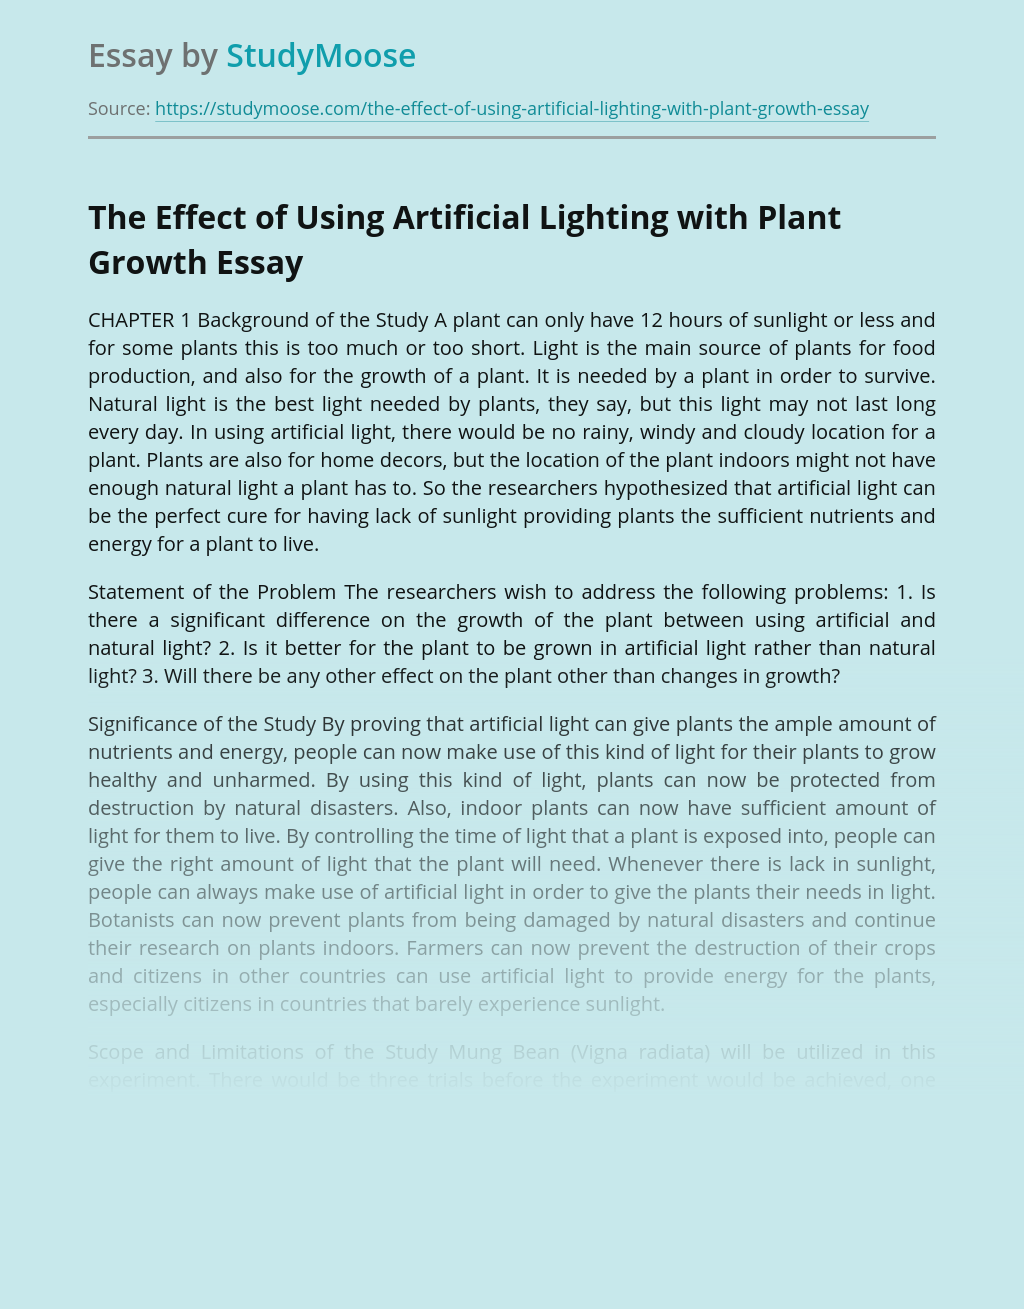 The Effect of Using Artificial Lighting with Plant Growth